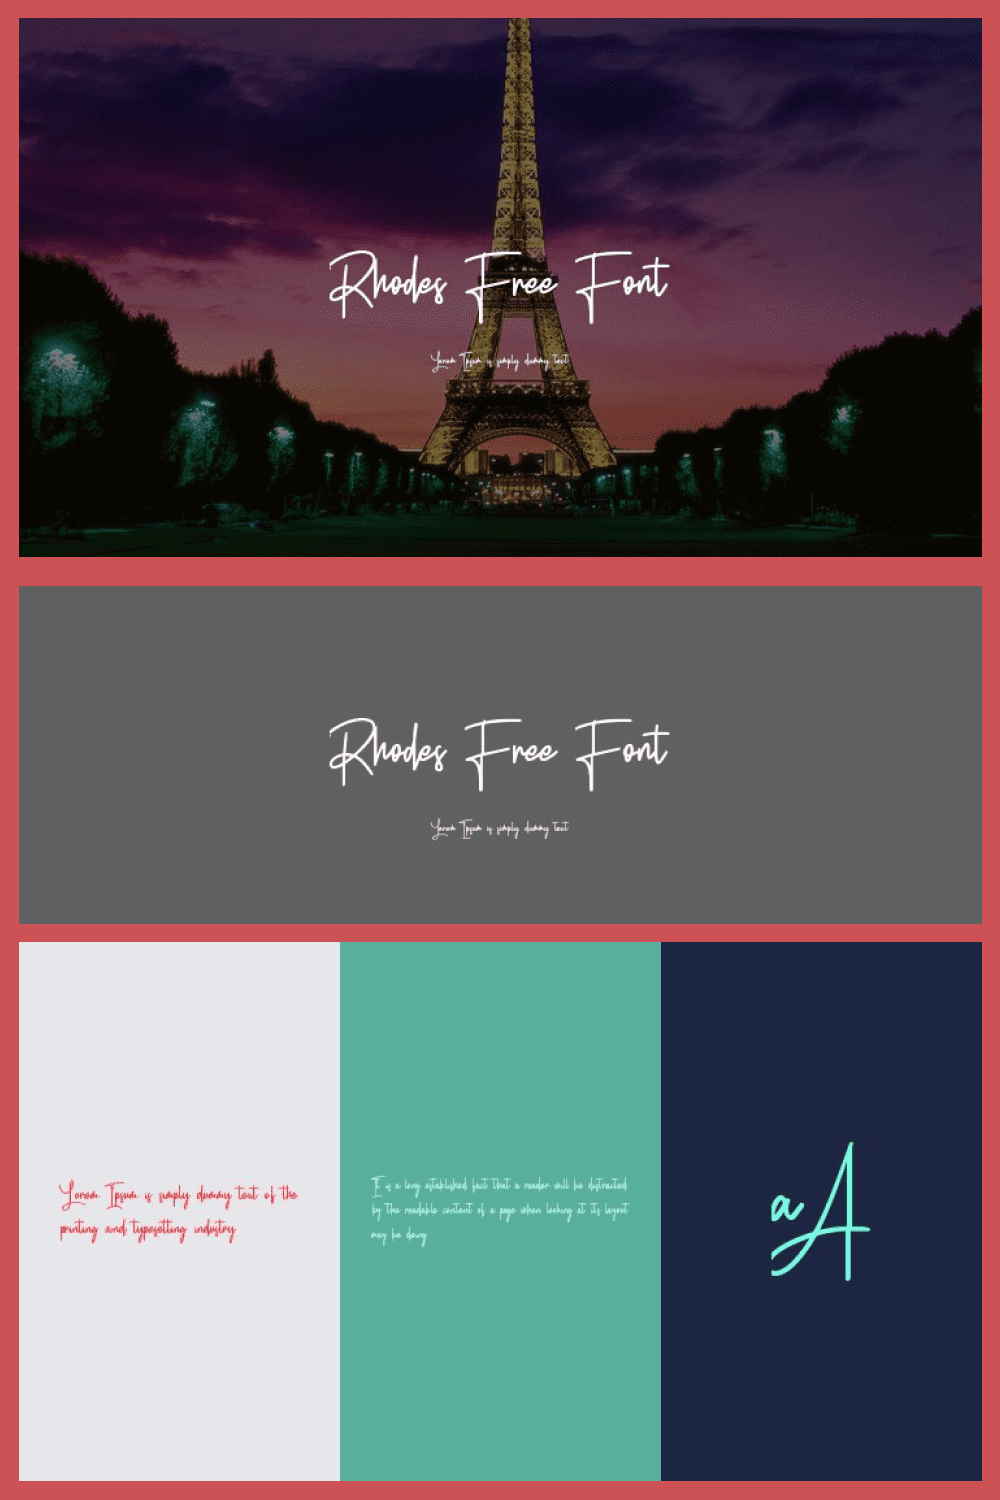 A romantic font that conveys love and tenderness.